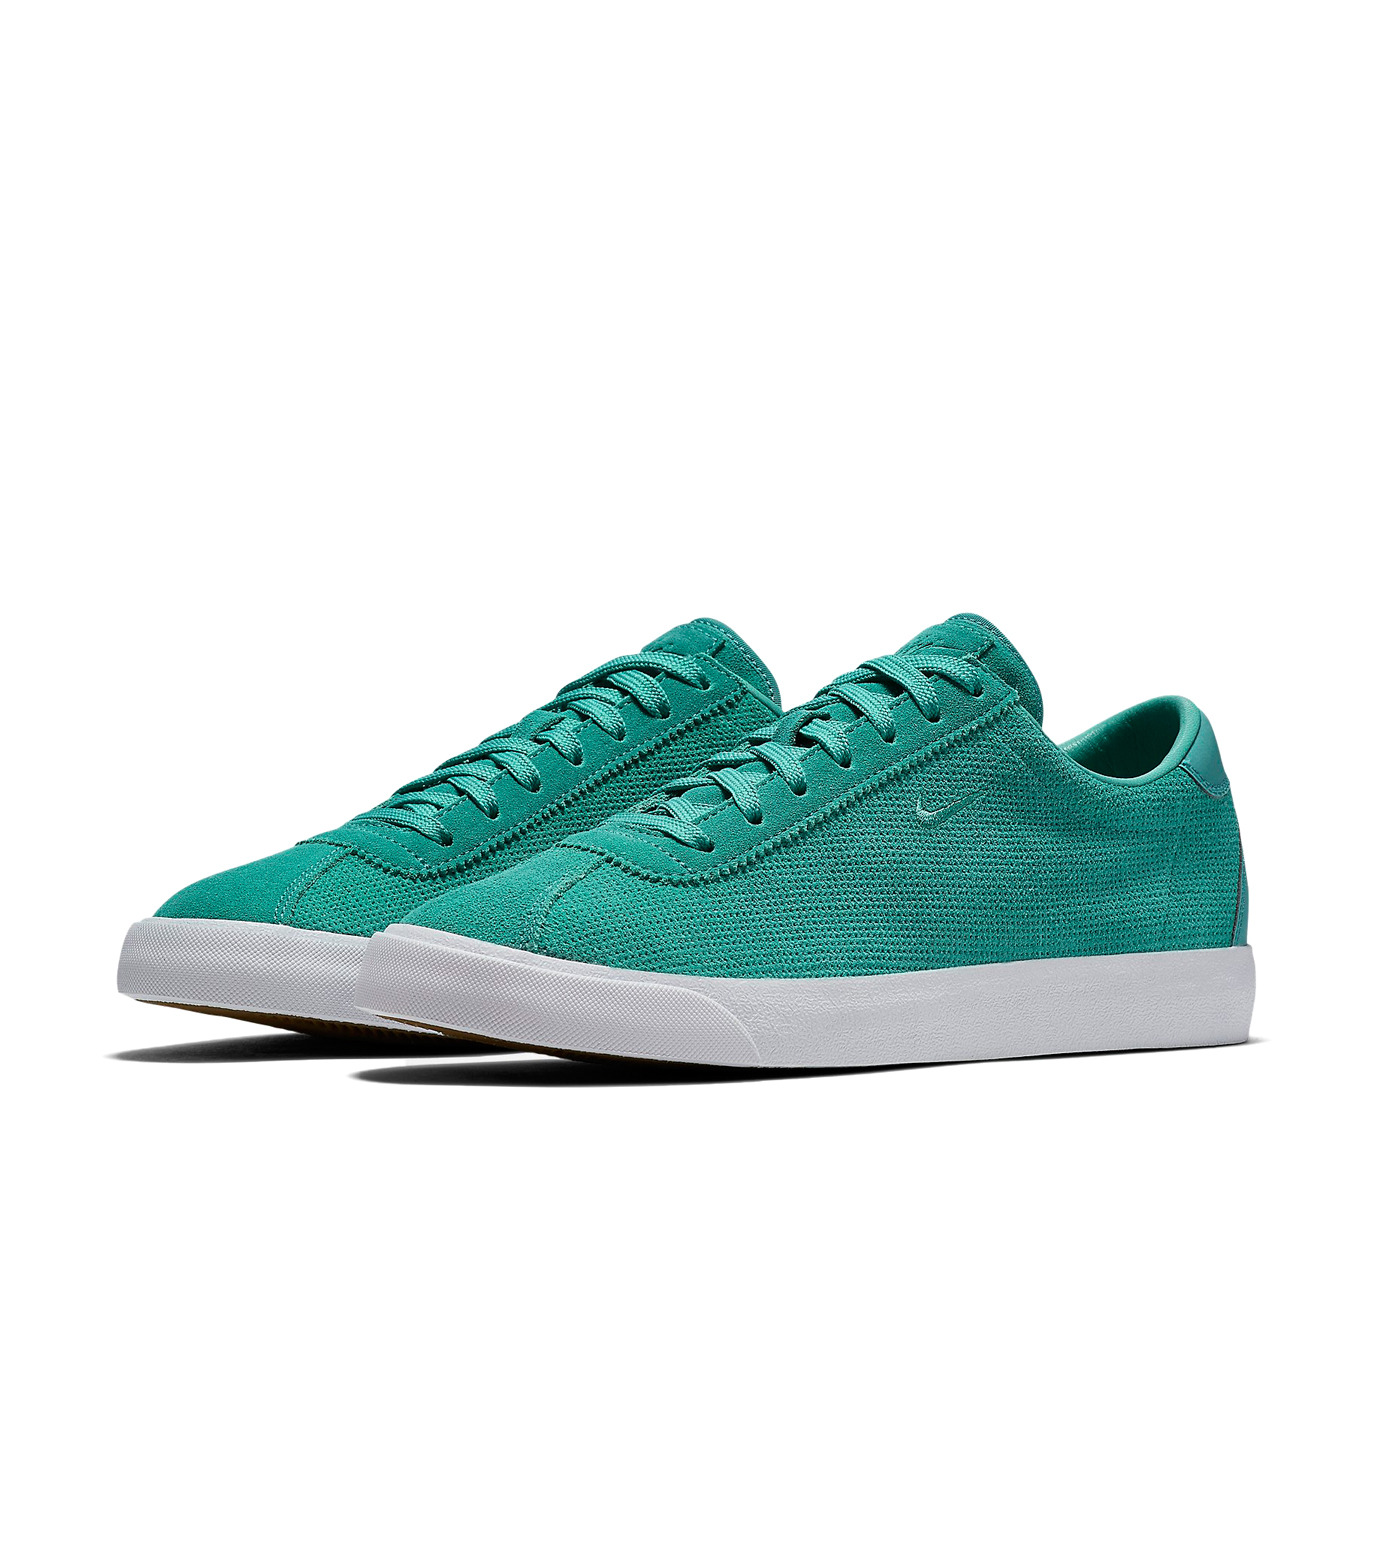 NIKE(ナイキ)のMATCH CLASSIC SUEDE-GREEN(シューズ/shoes)-864718-300-22 拡大詳細画像3